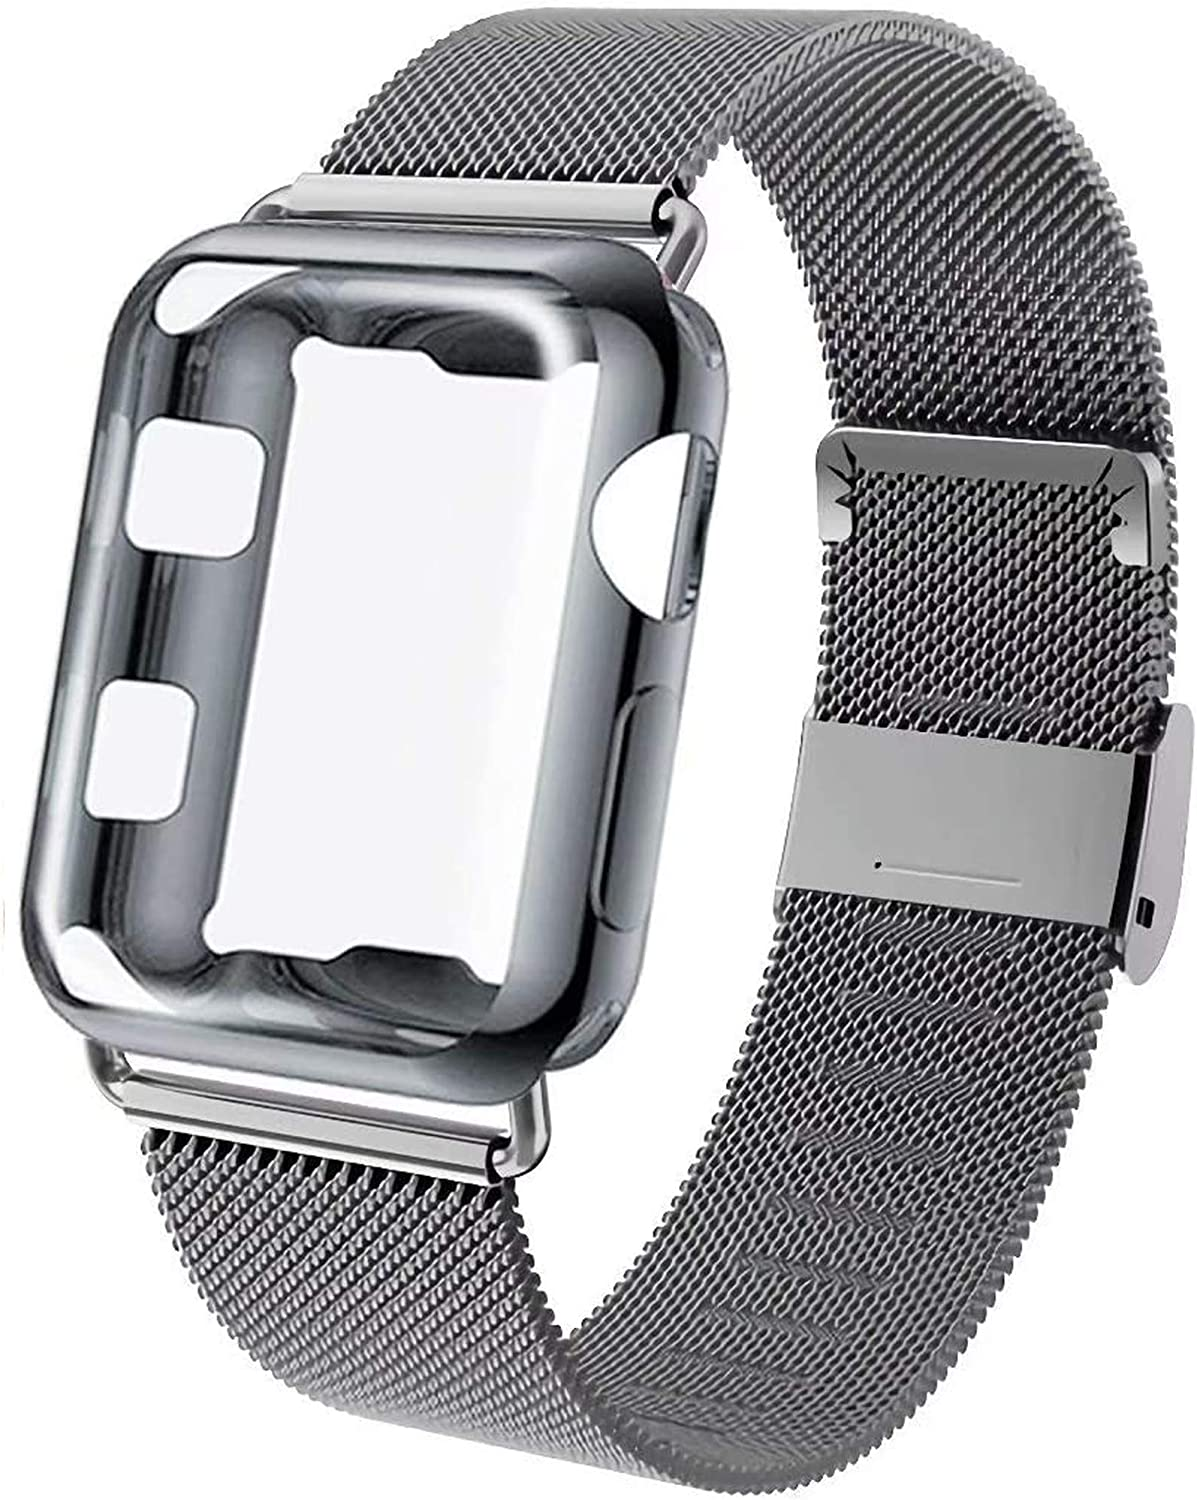 GBPOOT Compatible for Apple Watch Band 38mm 40mm 42mm 44mm with Screen Protector Case, Sports Wristband Strap Replacement Band with Protective Case for Iwatch Series 6/SE/5/4/3/2/1,40mm,Space Gray